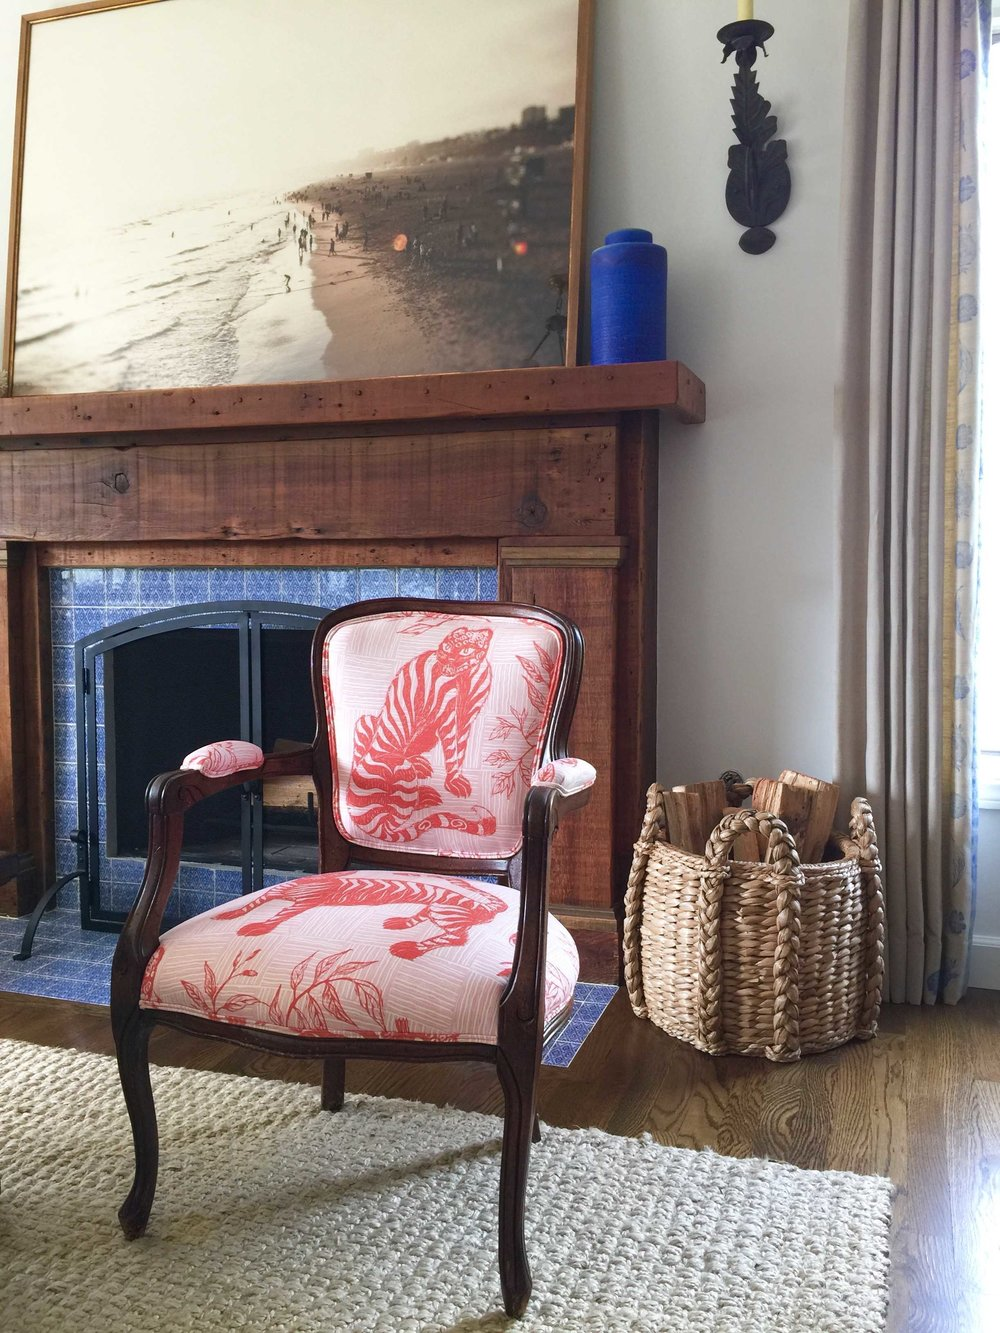 Tiger & Magpie Fabric in Carmine on a chair  Photo by Karyn Millet